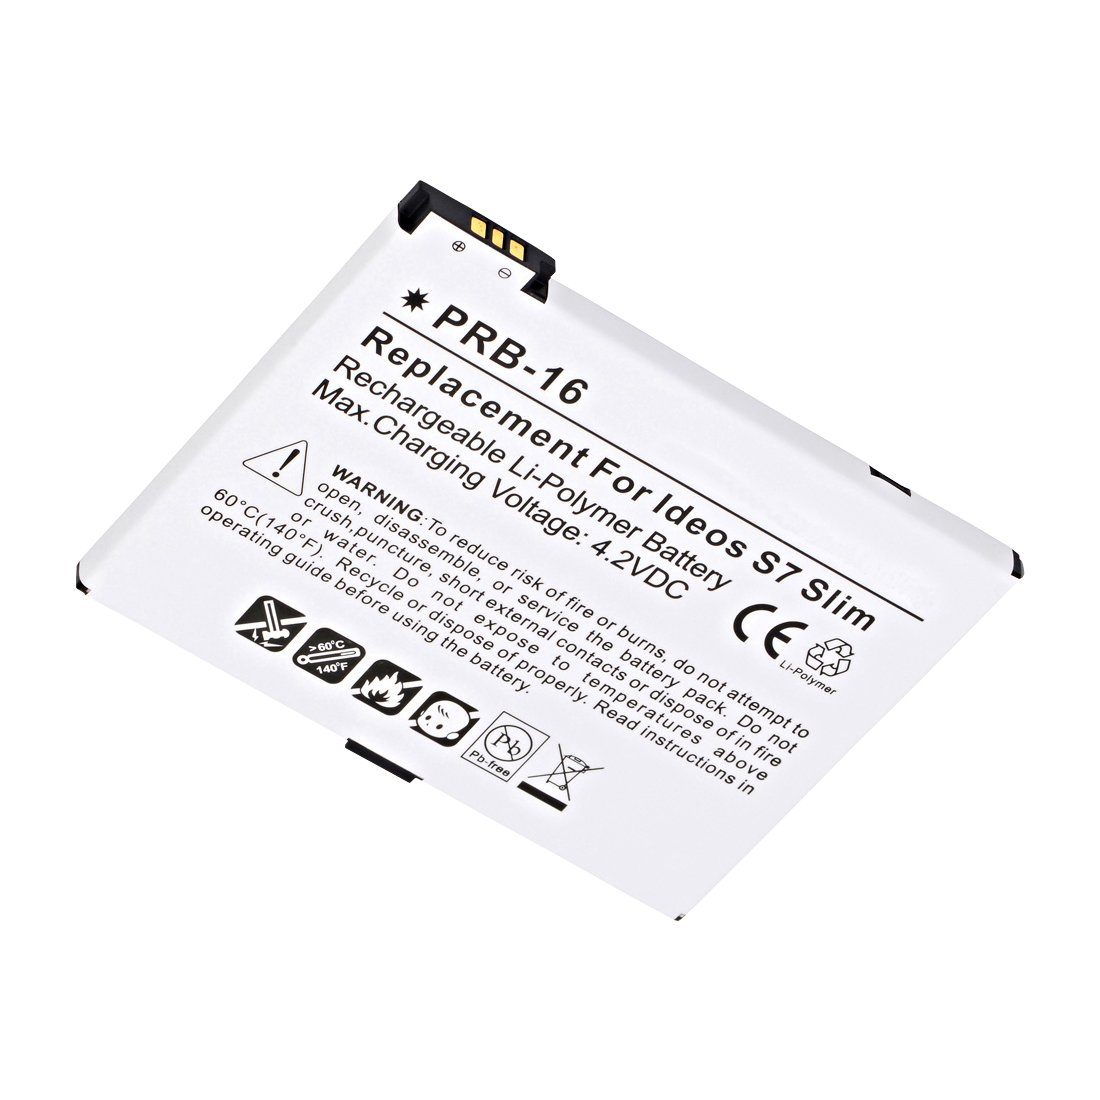 Replacement Huawei Ideos S7 Slim Tablet Battery Batterymart